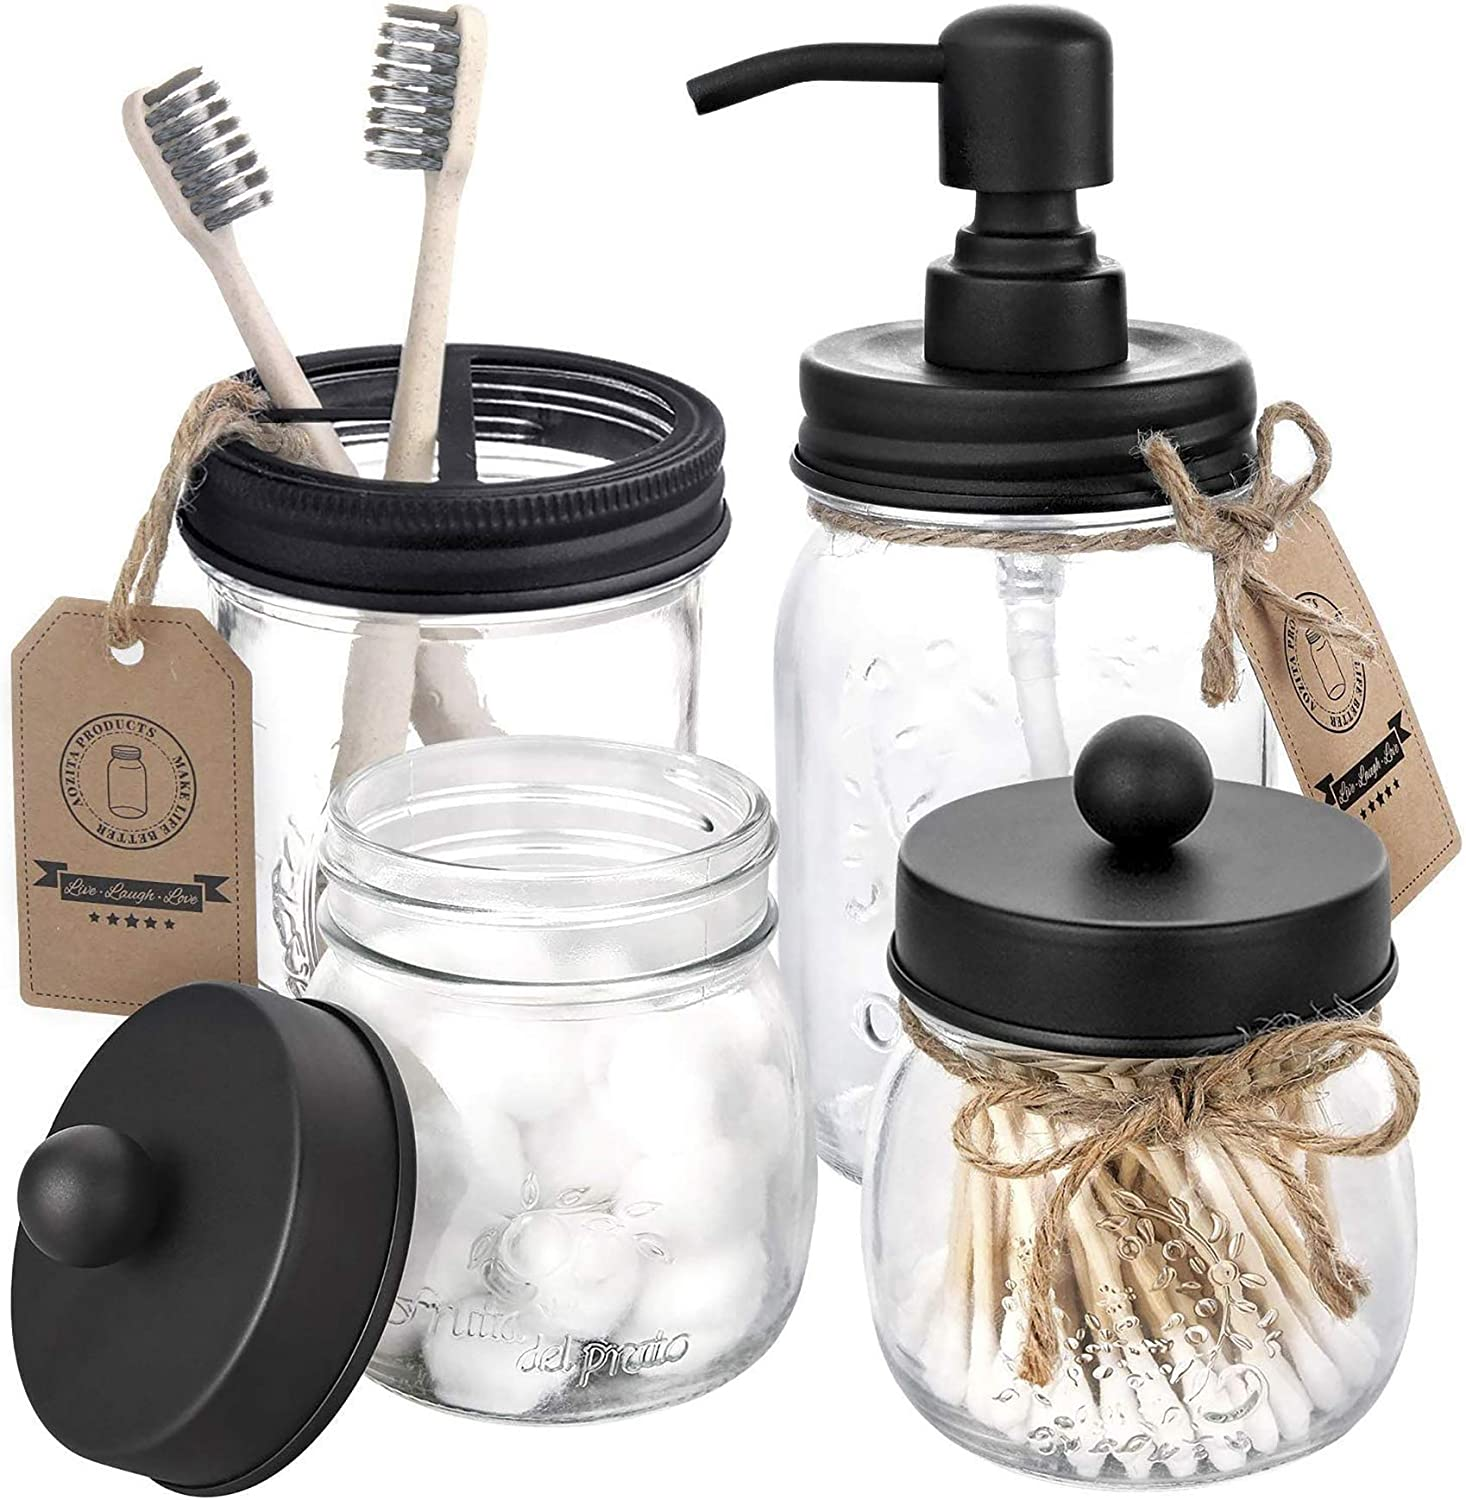 Mason Jar Bathroom Accessories Set 4 Pcs - Mason Jar Soap Dispenser & 2 Apothecary Jars & Toothbrush Holder - Rustic Farmhouse Decor, Bathroom Home Decor, Countertop Vanity Organize - Black: Home & Kitchen